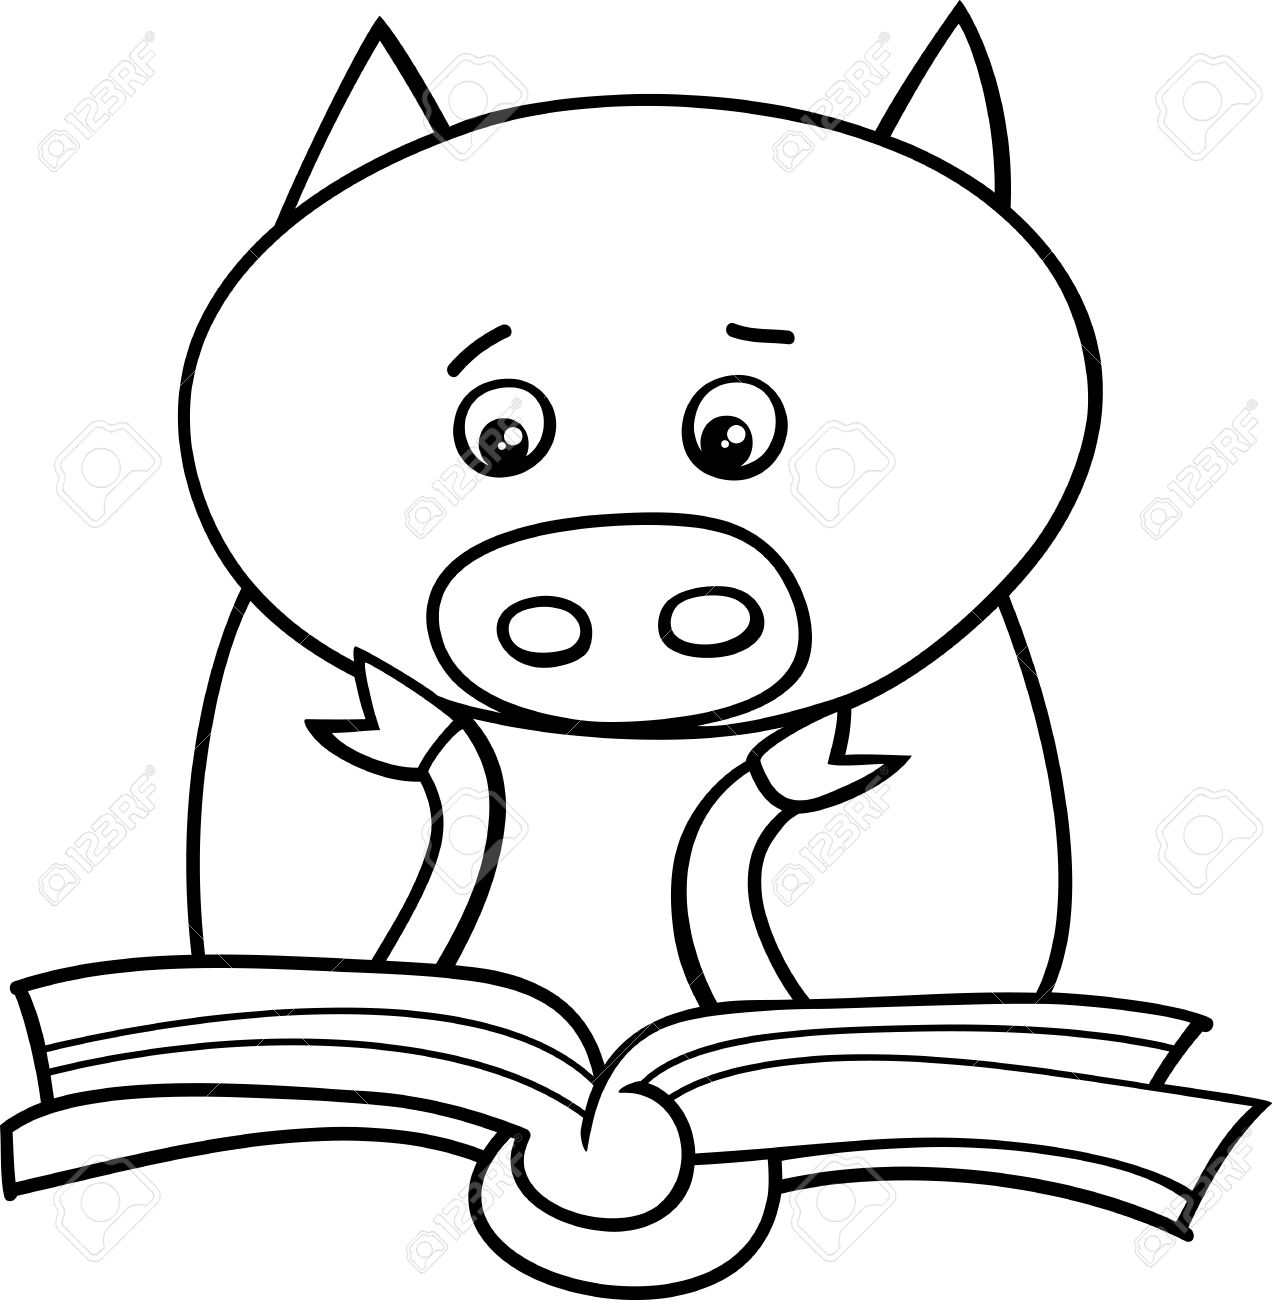 black and white cartoon illustration of funny pig animal character rh 123rf com Spring into Reading Clip Art Cute Reading